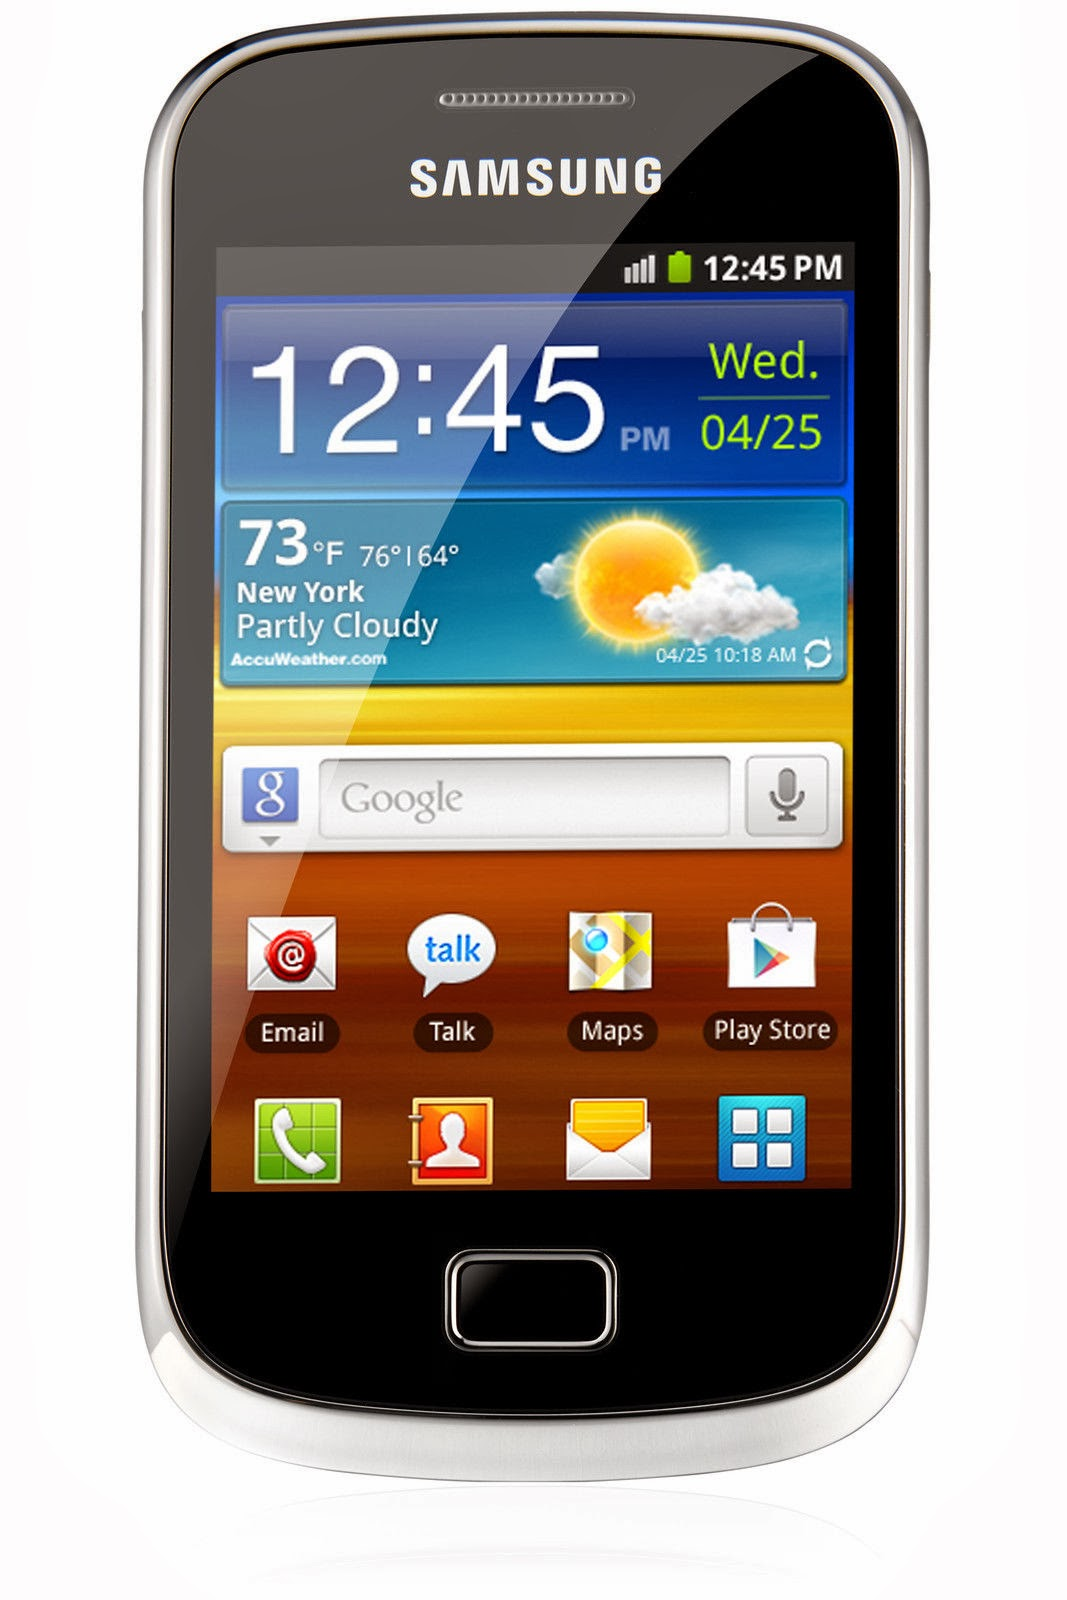 Samsung Galaxy mini2 s6500 Hard Reset, hard reset Samsung galaxy, remove pattern lock, factory reset, android